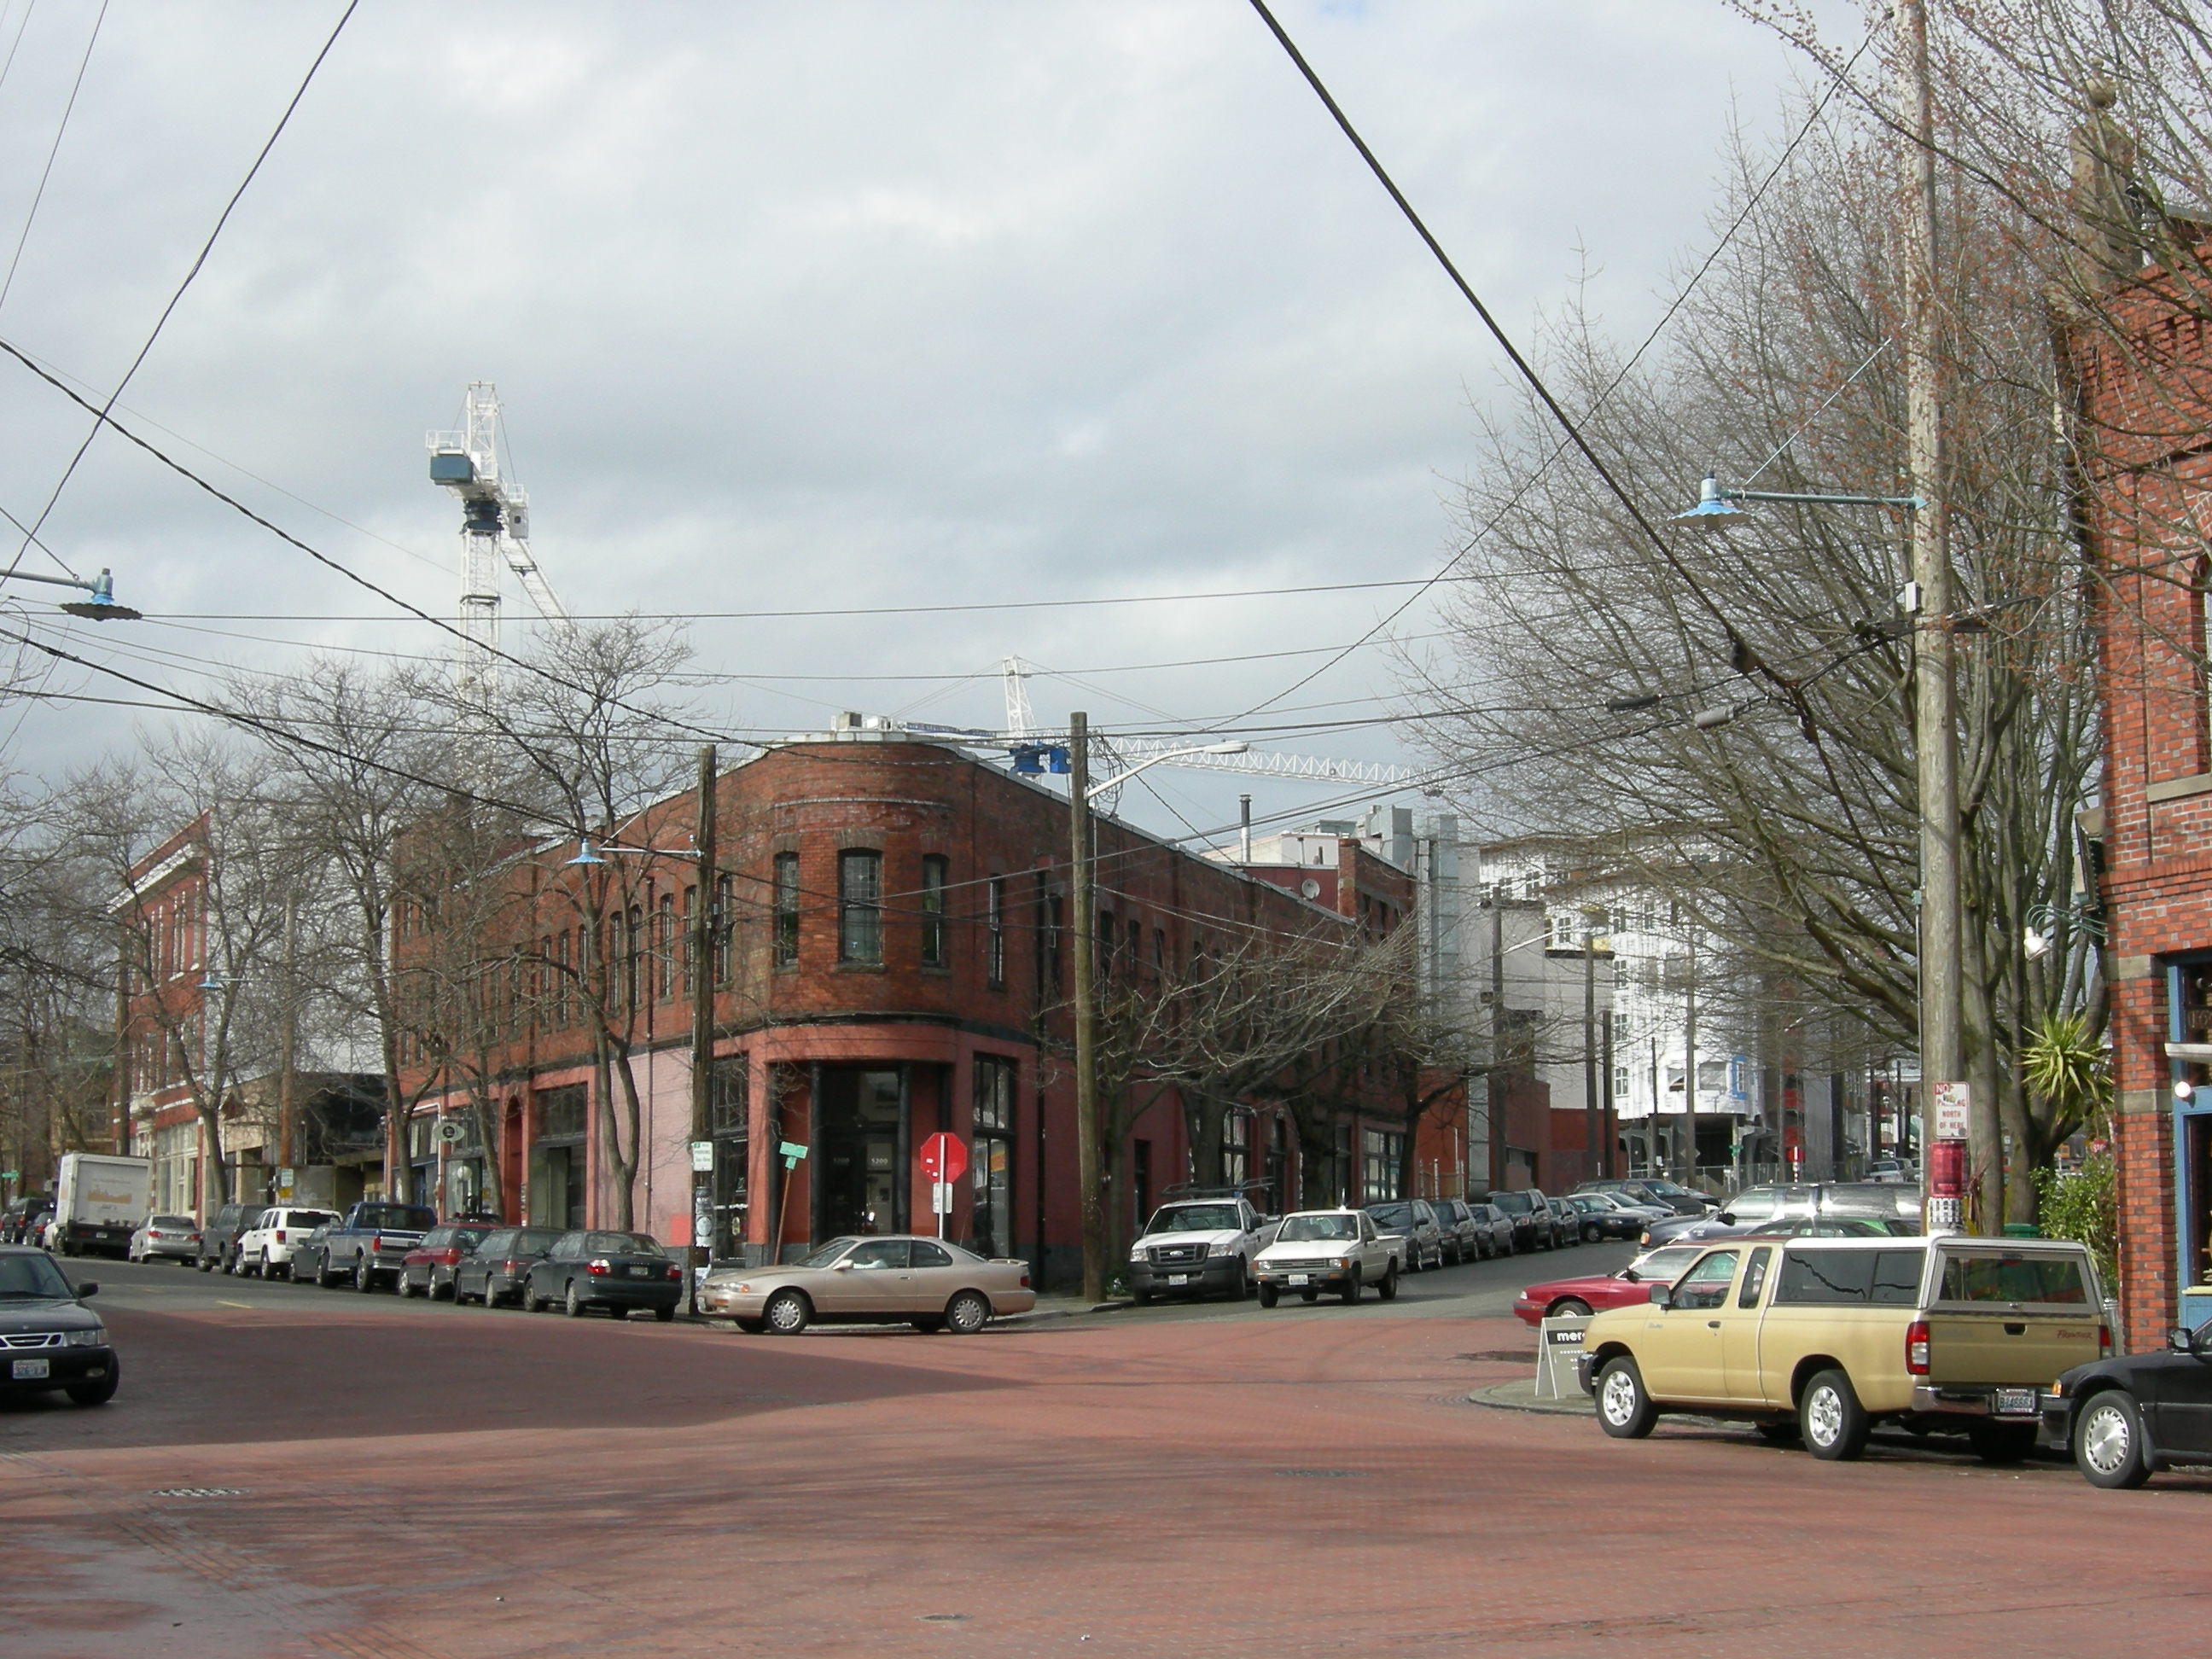 ballard avenue historic district - wikipedia